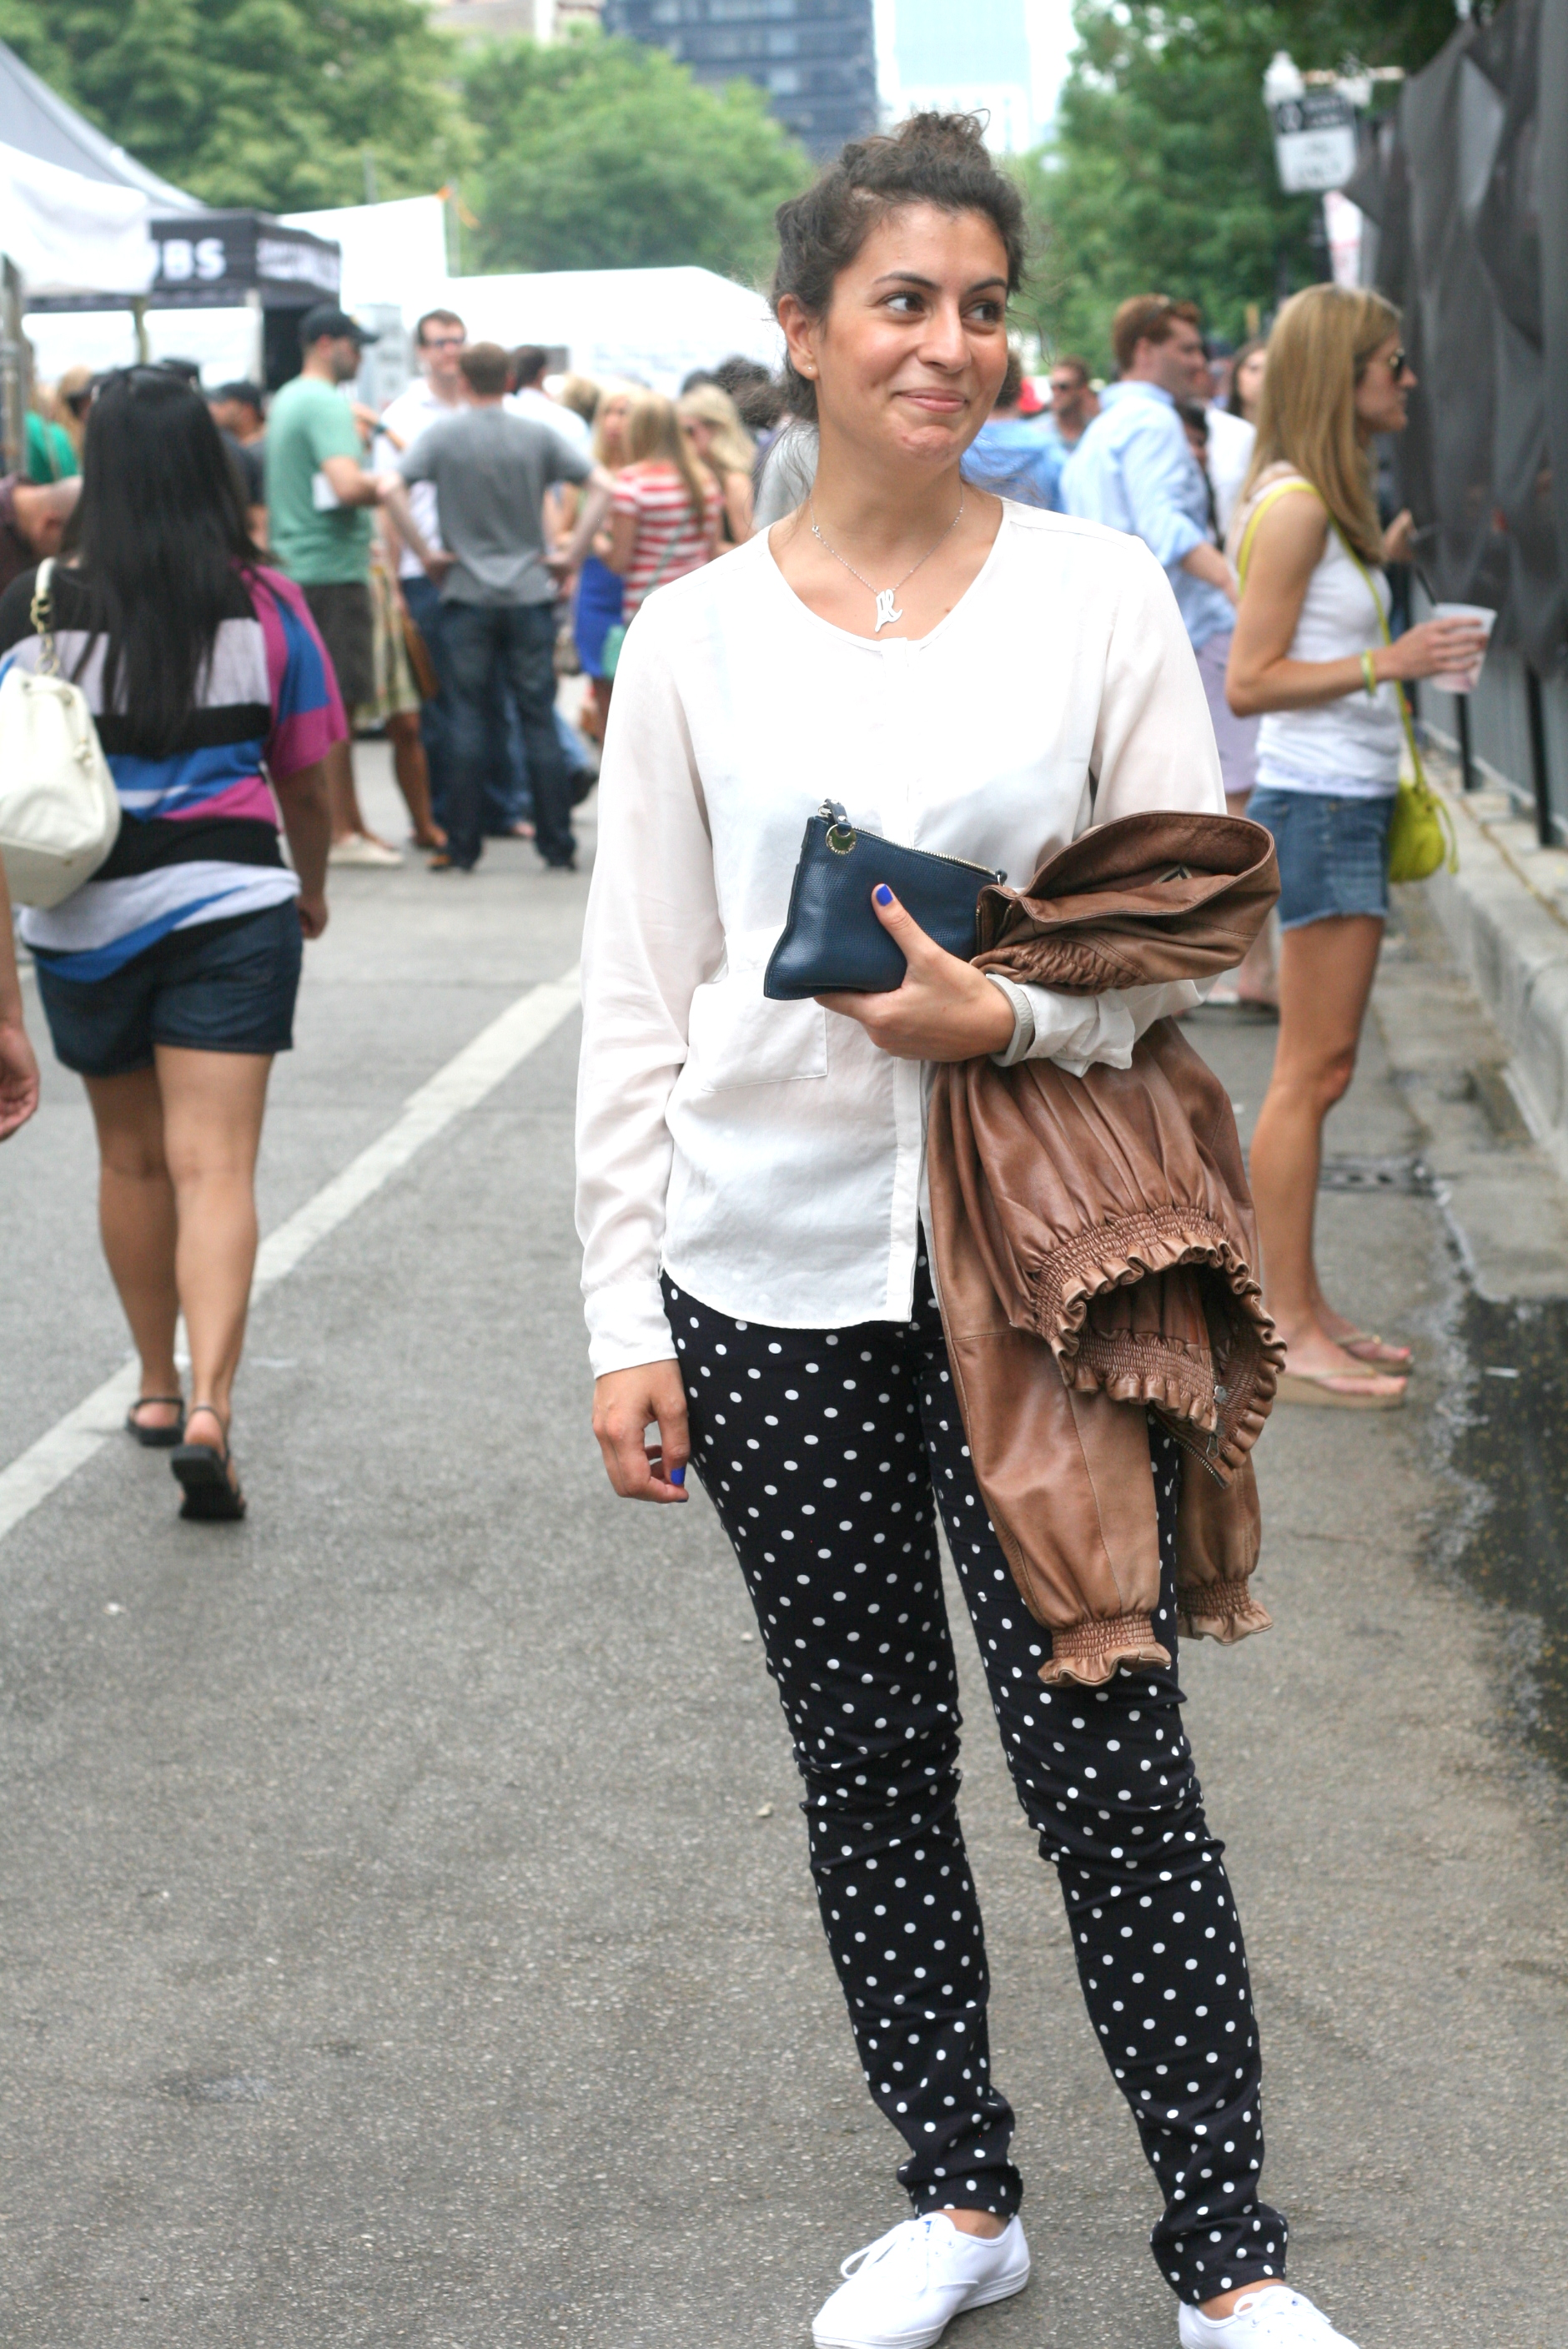 Ms. Al Sharifa's Polka Dot trousers by Max & CO., Shirt by Penny Black, Shoes are Keds and the Pochette is by PennyBlack